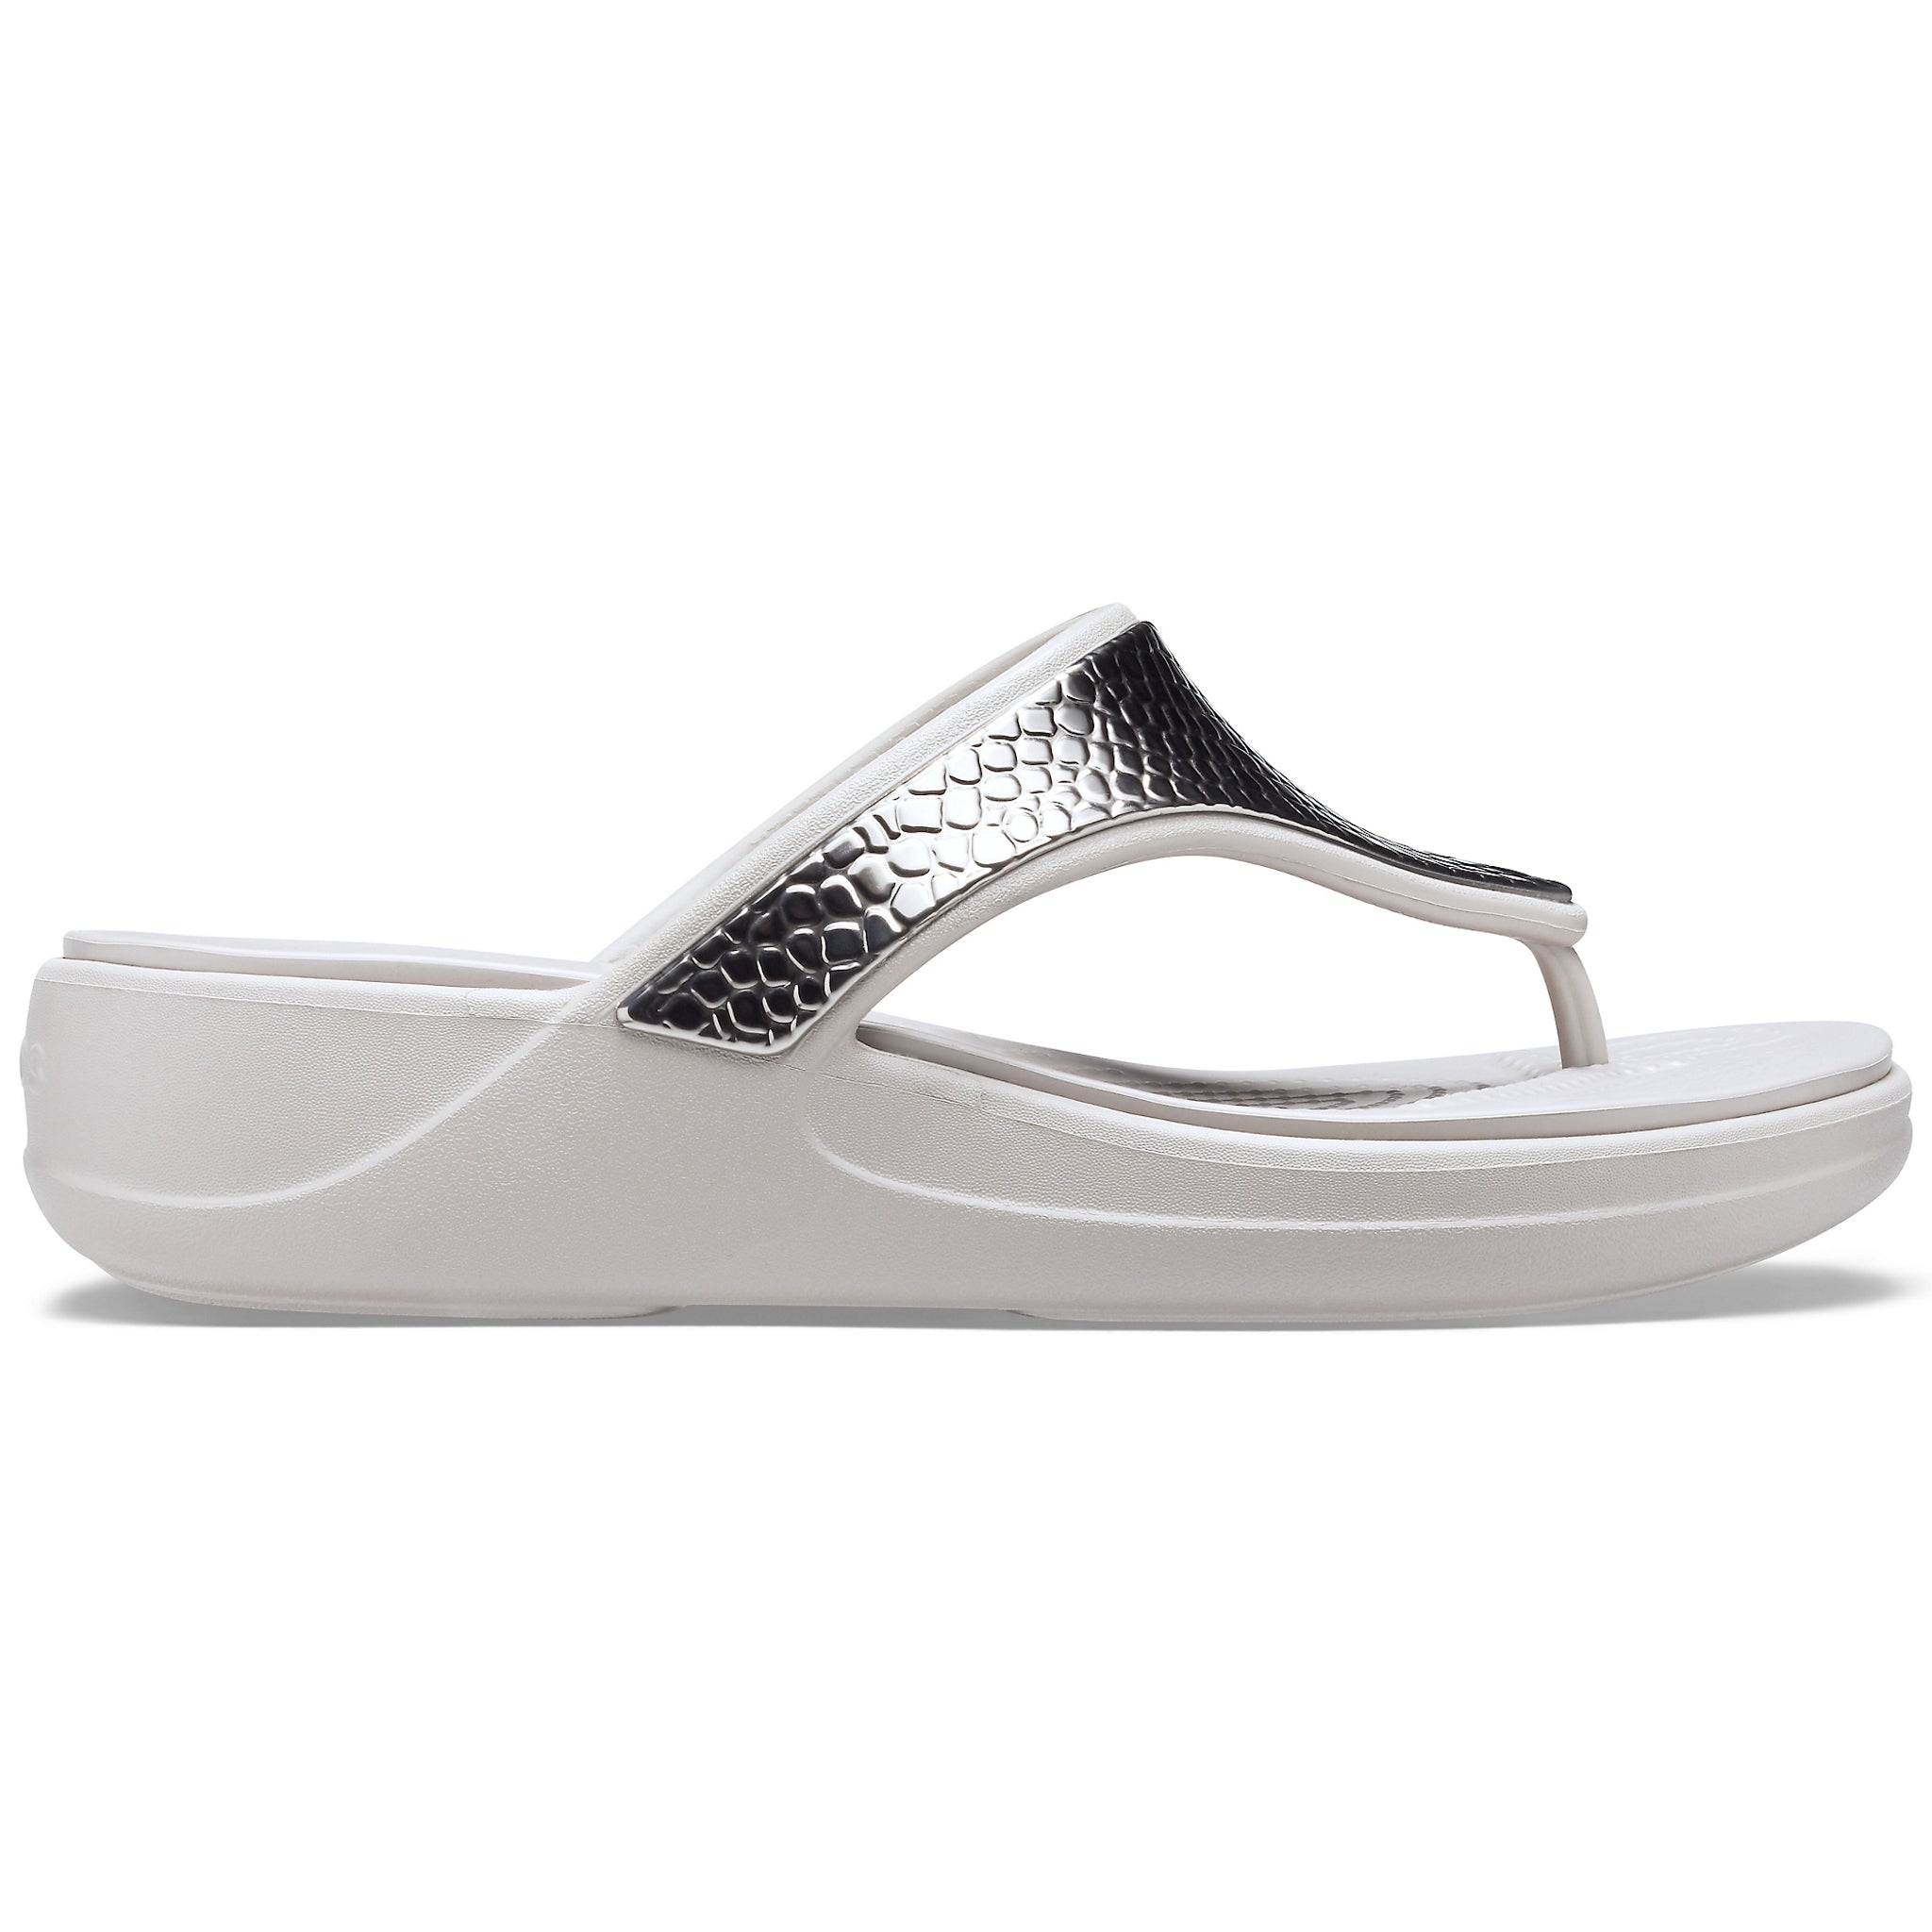 CROCS MONTEREY Metallic Wedge Flip Sandal Silver/ Platinum - Ladies